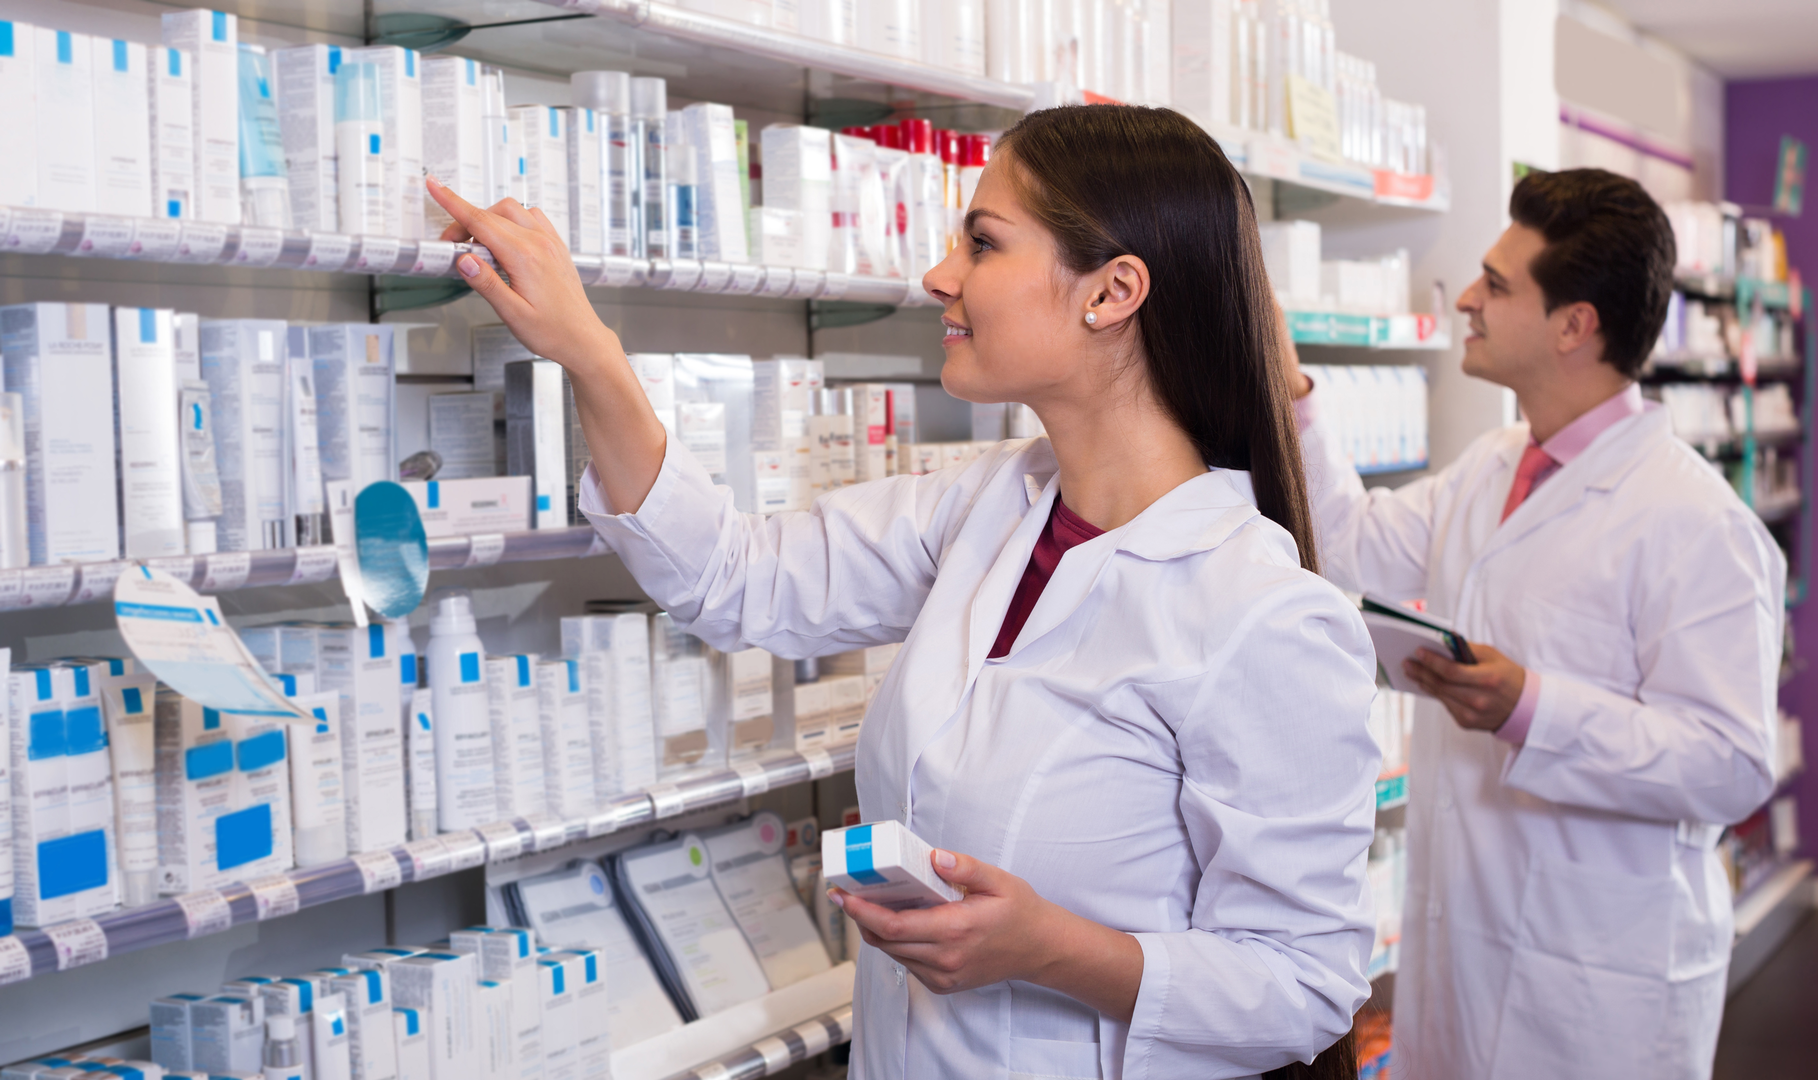 Two pharmacists filling prescriptions in a pharmacy